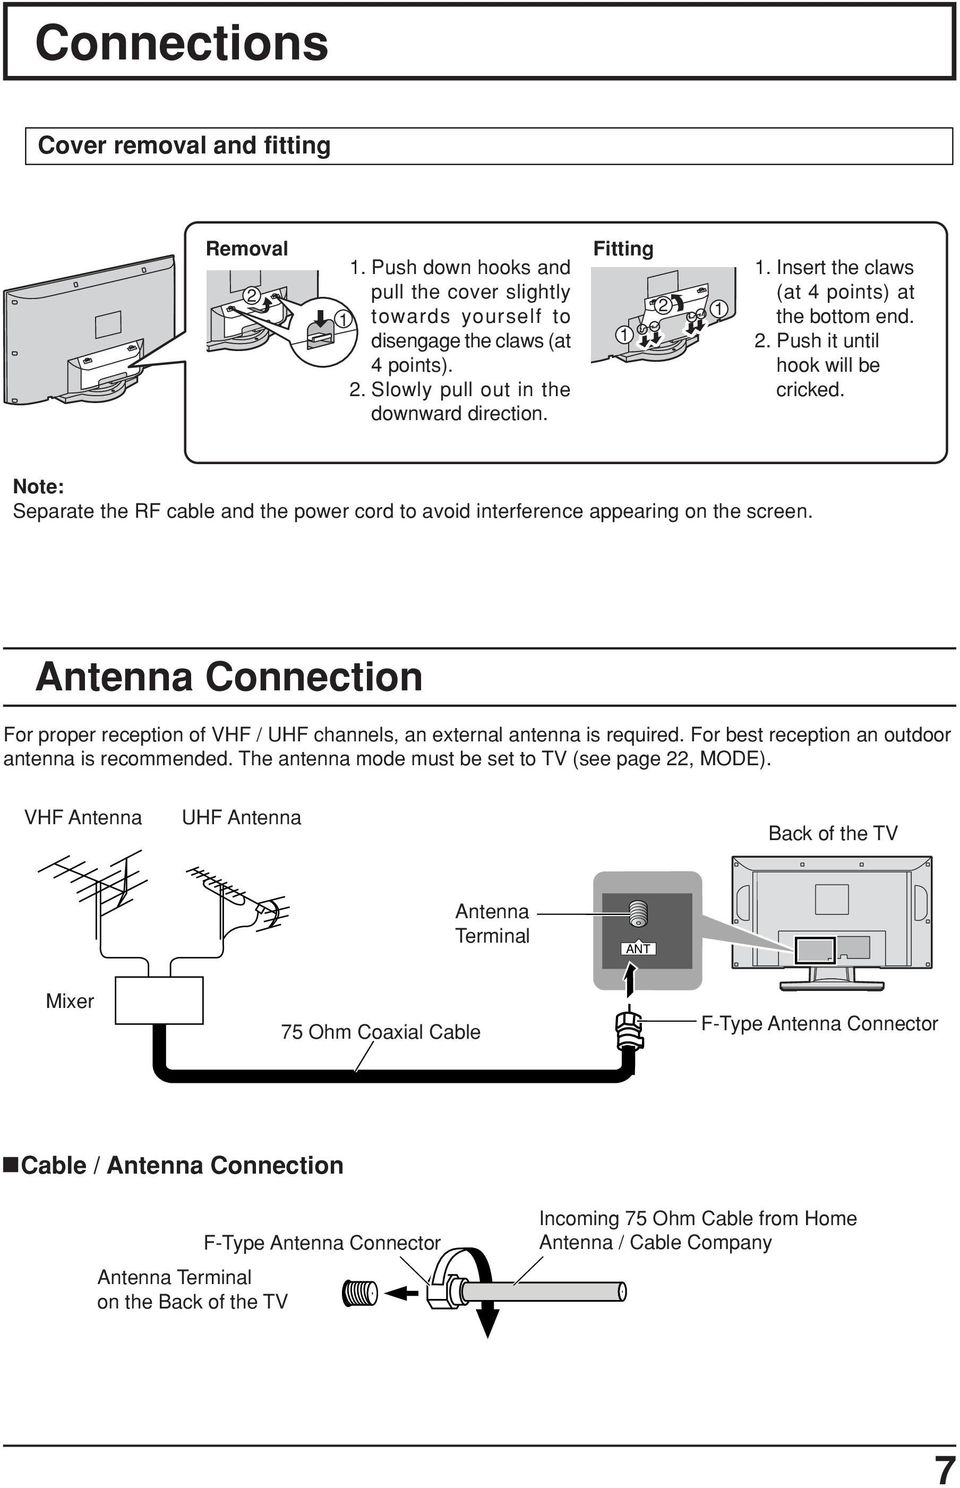 Antenna Connection For proper reception of VHF / UHF channels, an external antenna is required. For best reception an outdoor antenna is recommended.